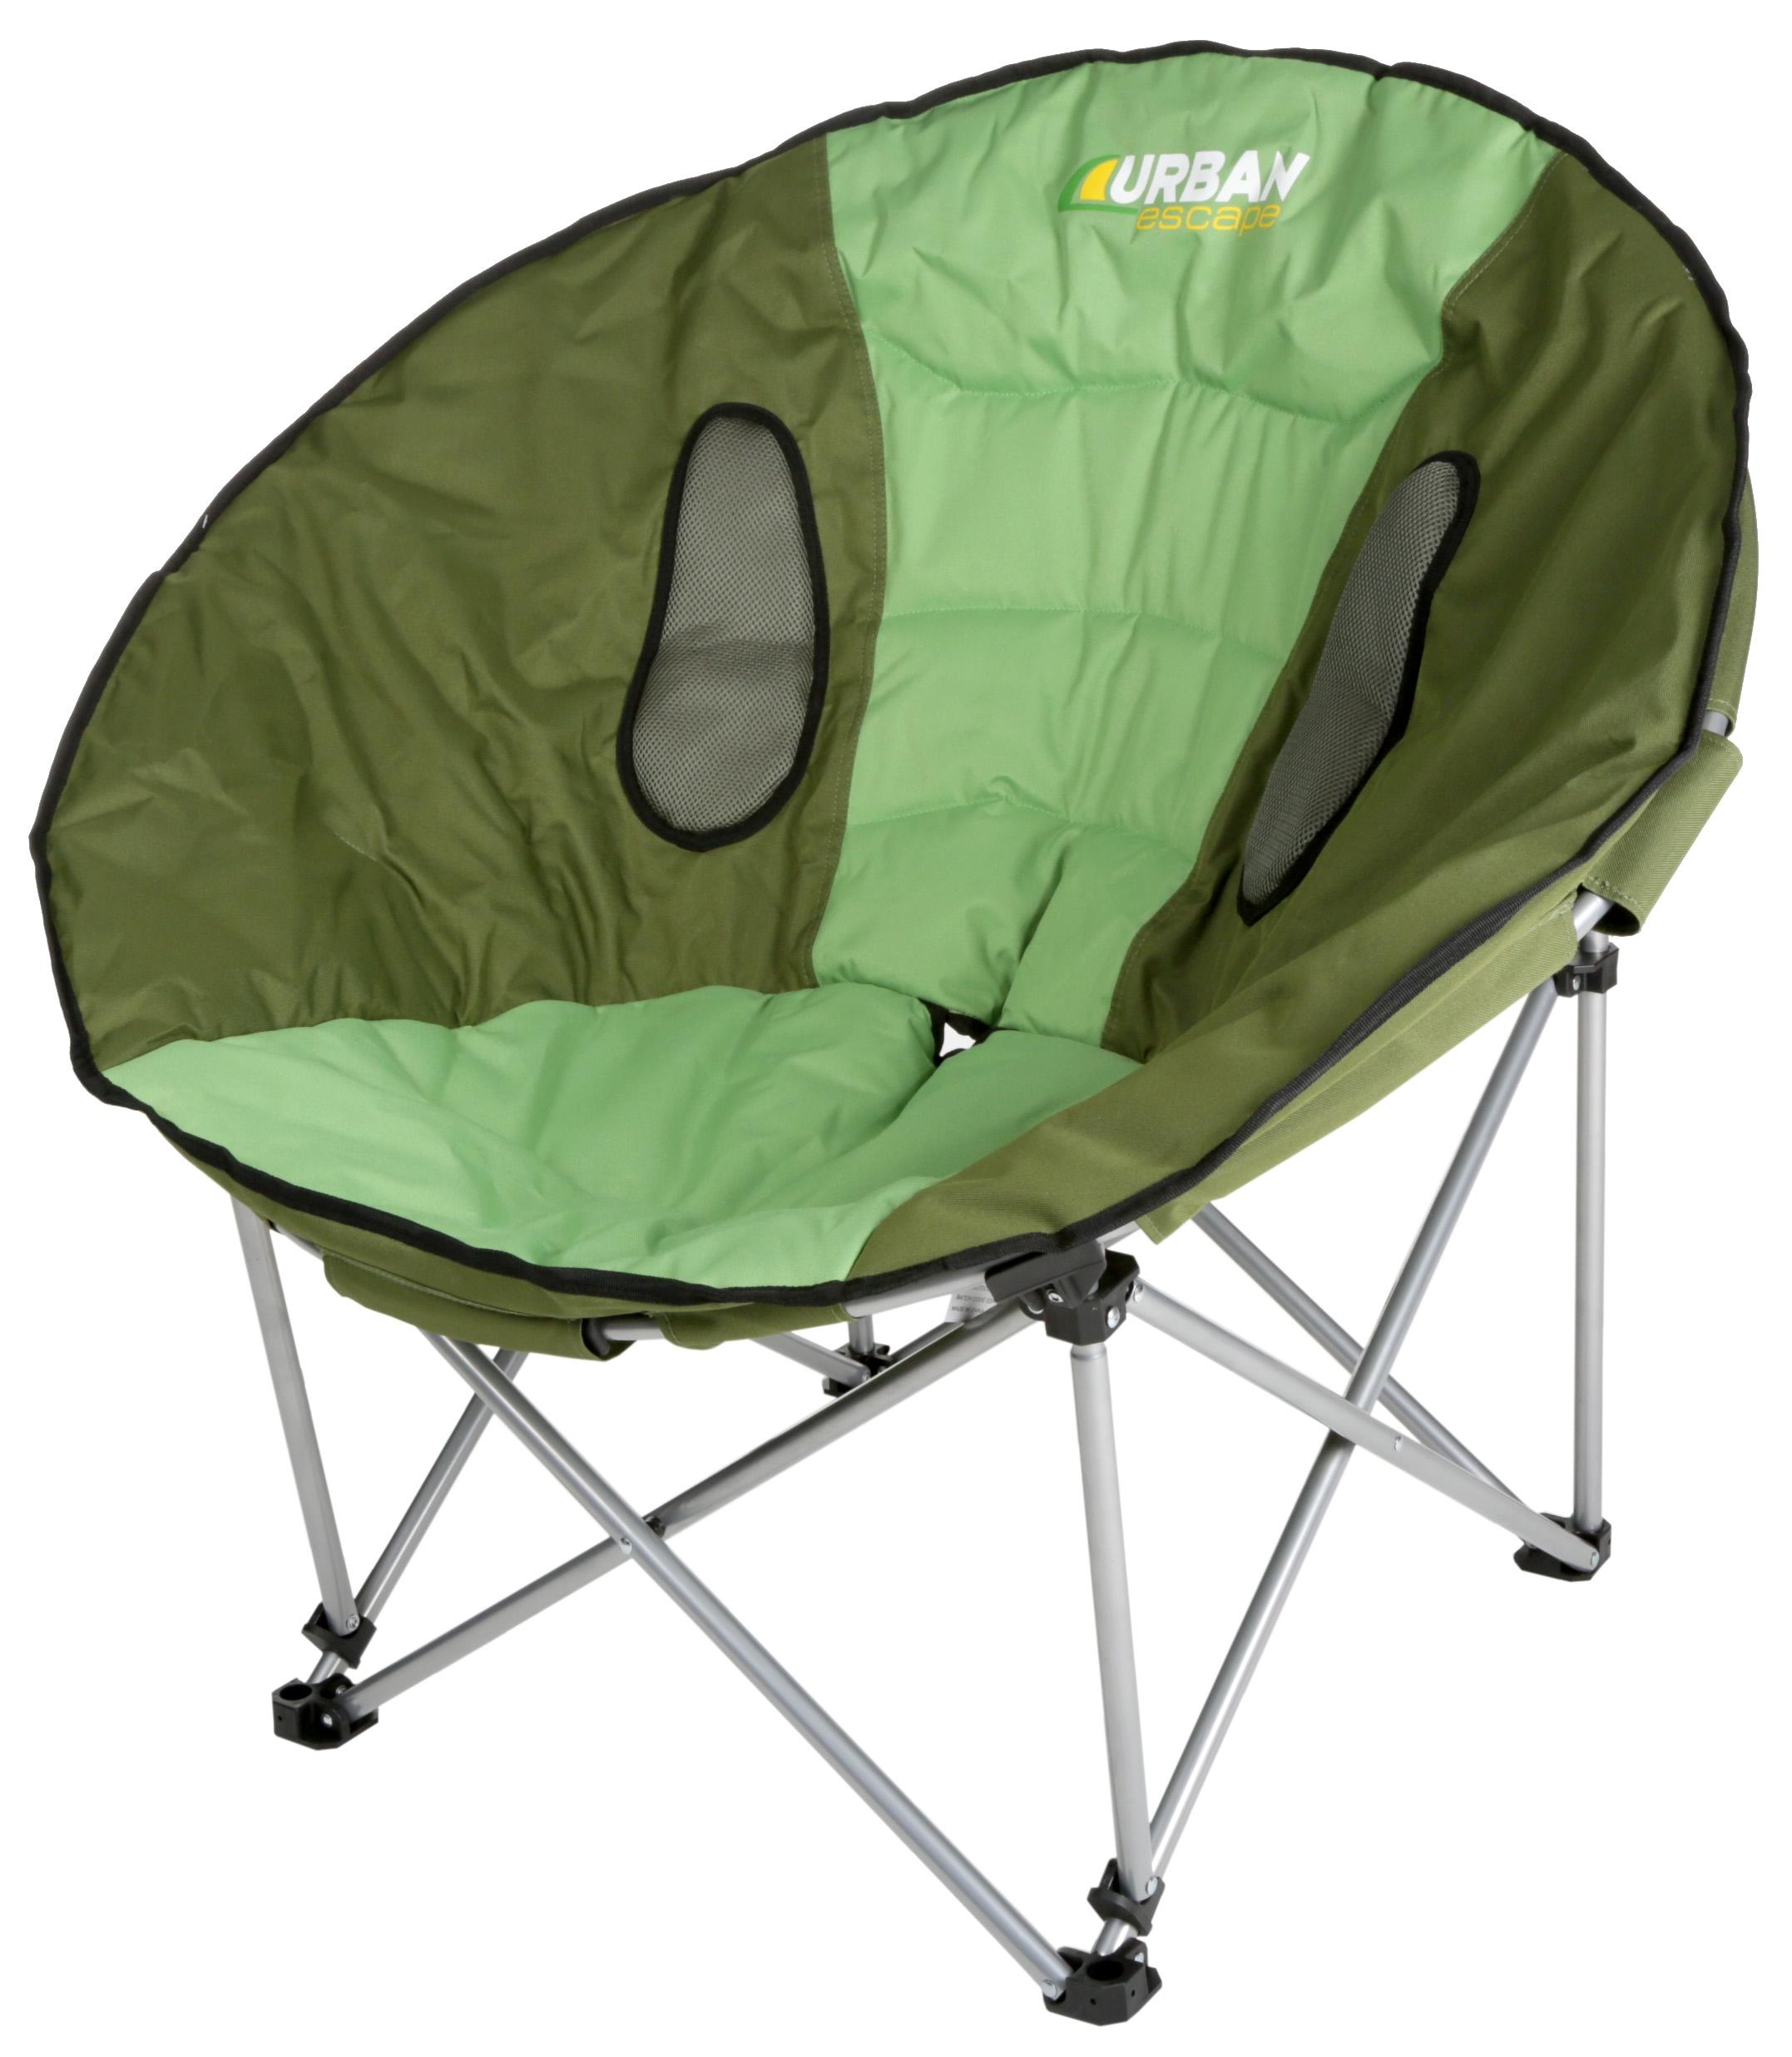 Comfortable Camping Chairs Urban Escape Moon Chair Green Steel Tube Foldable Comfort